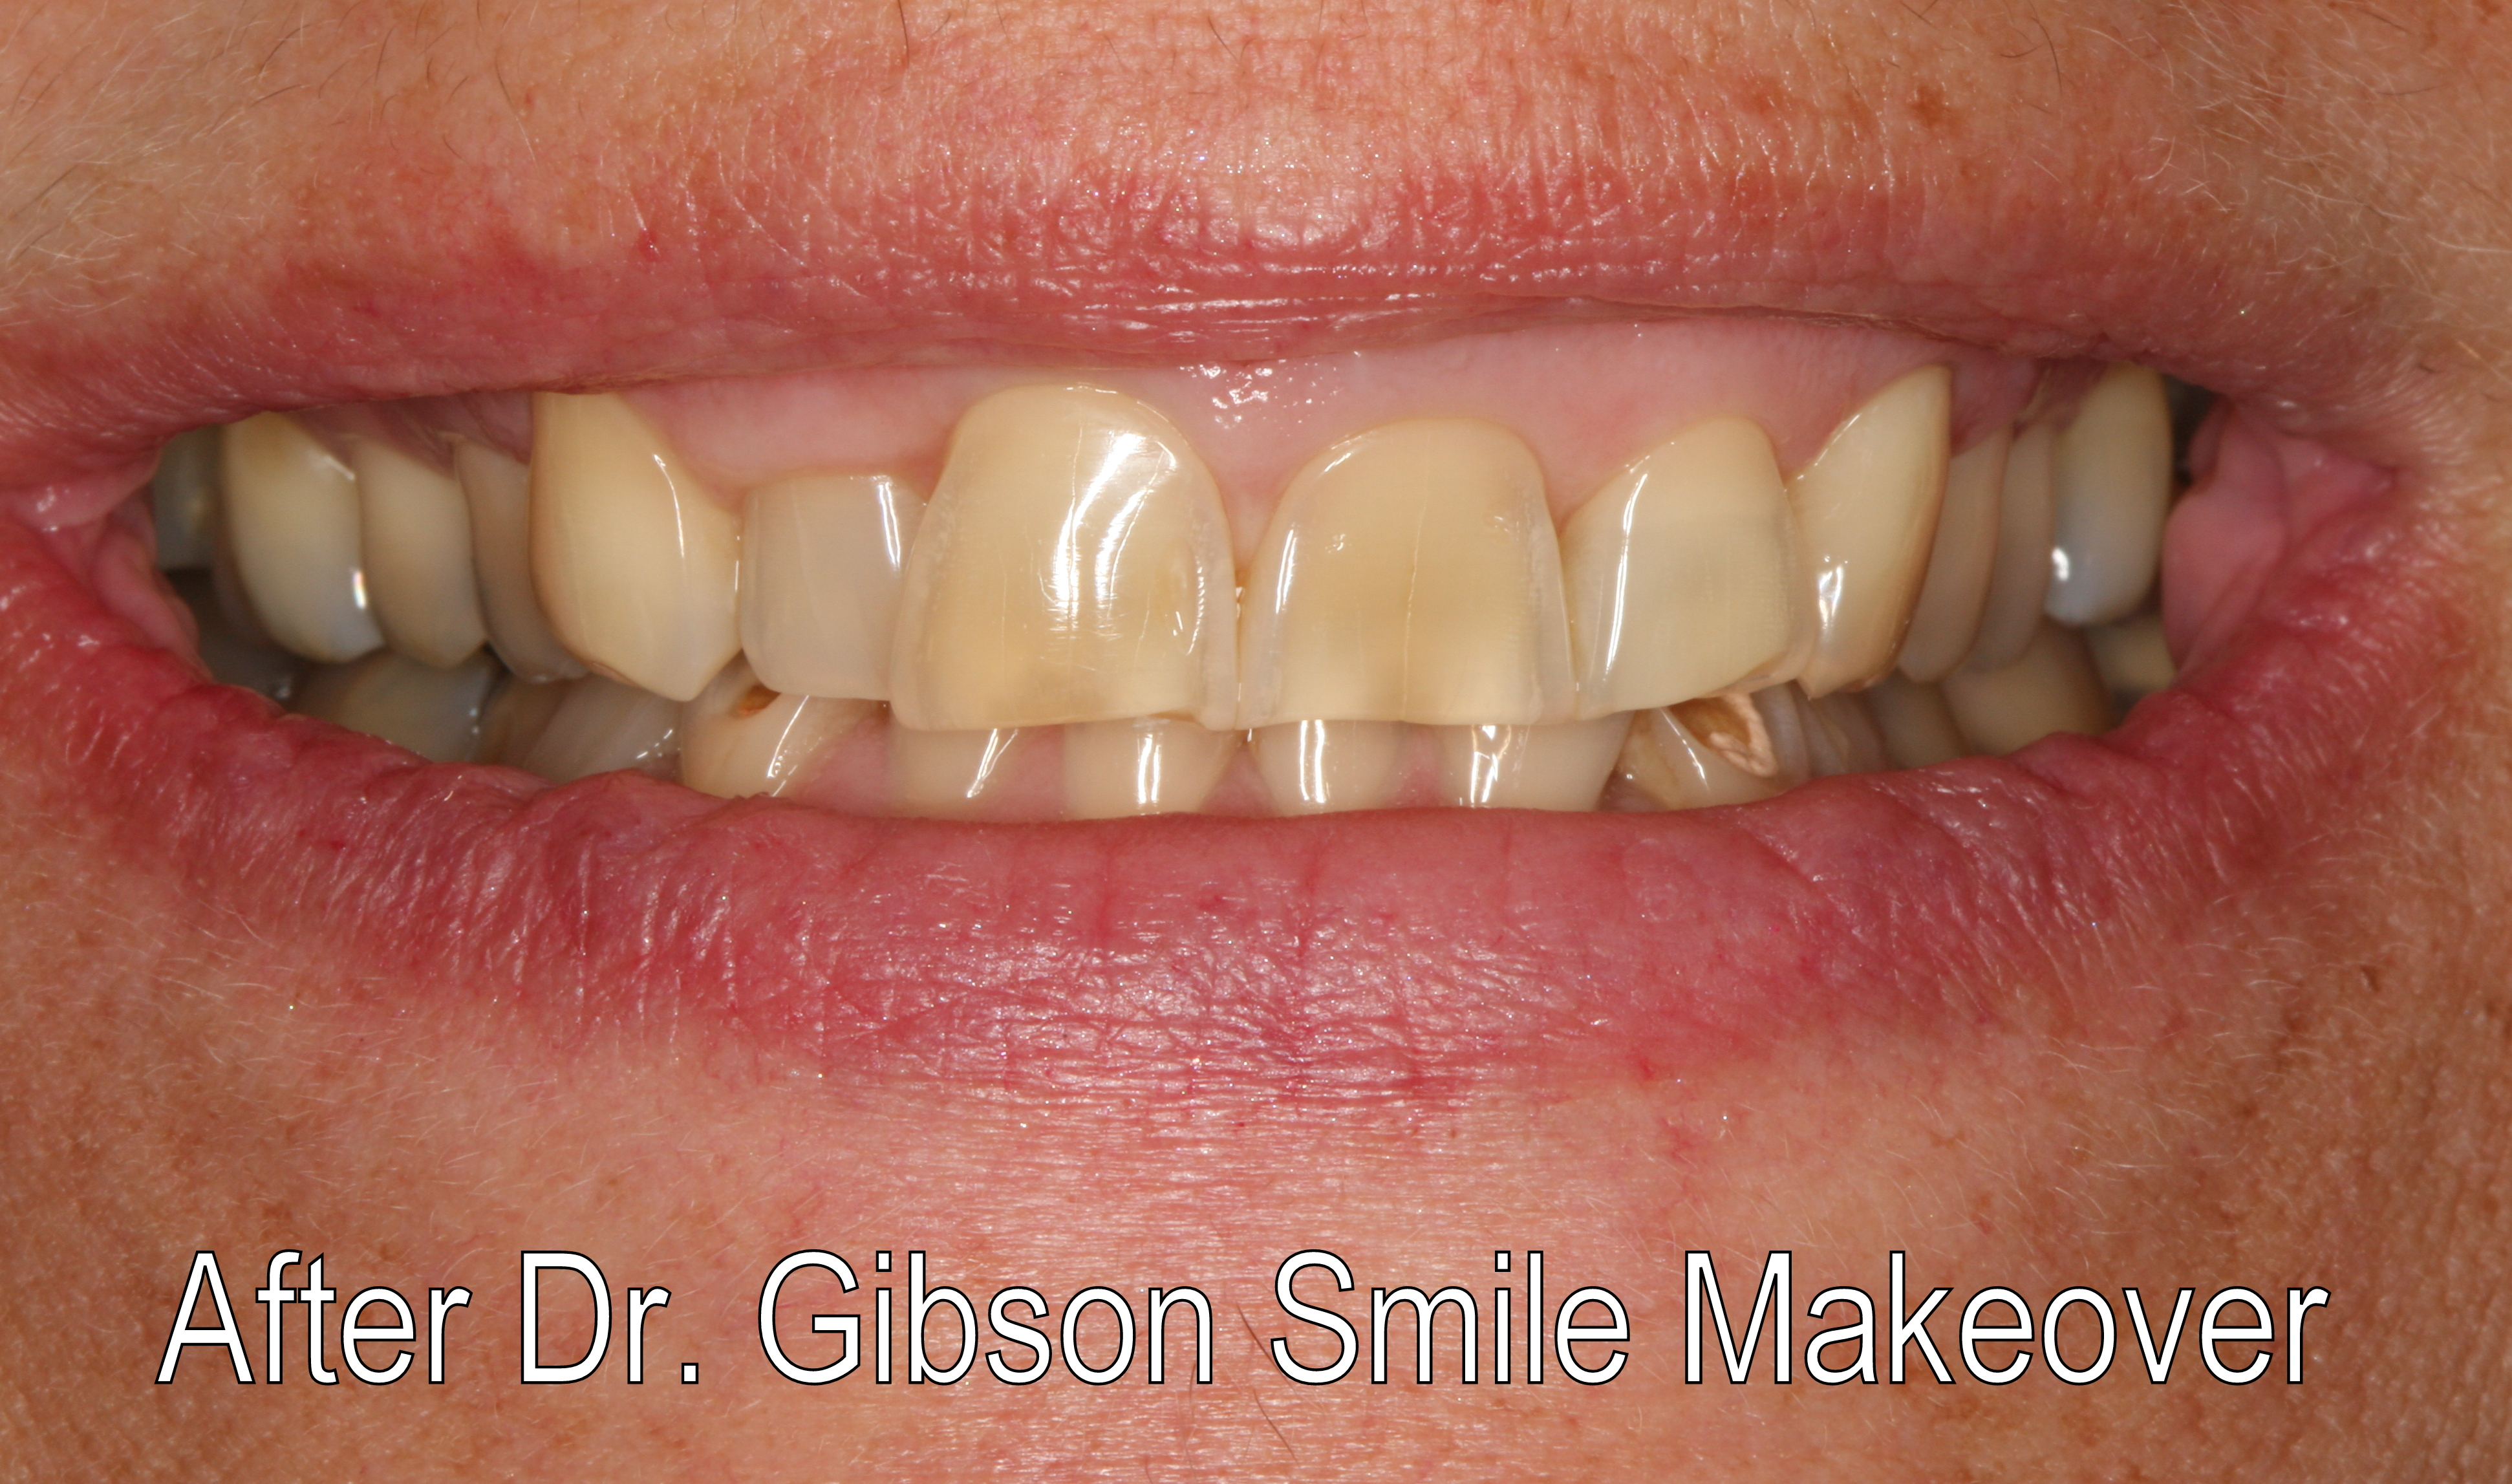 Smiles By Dr. Gibson Smile Makeover 2